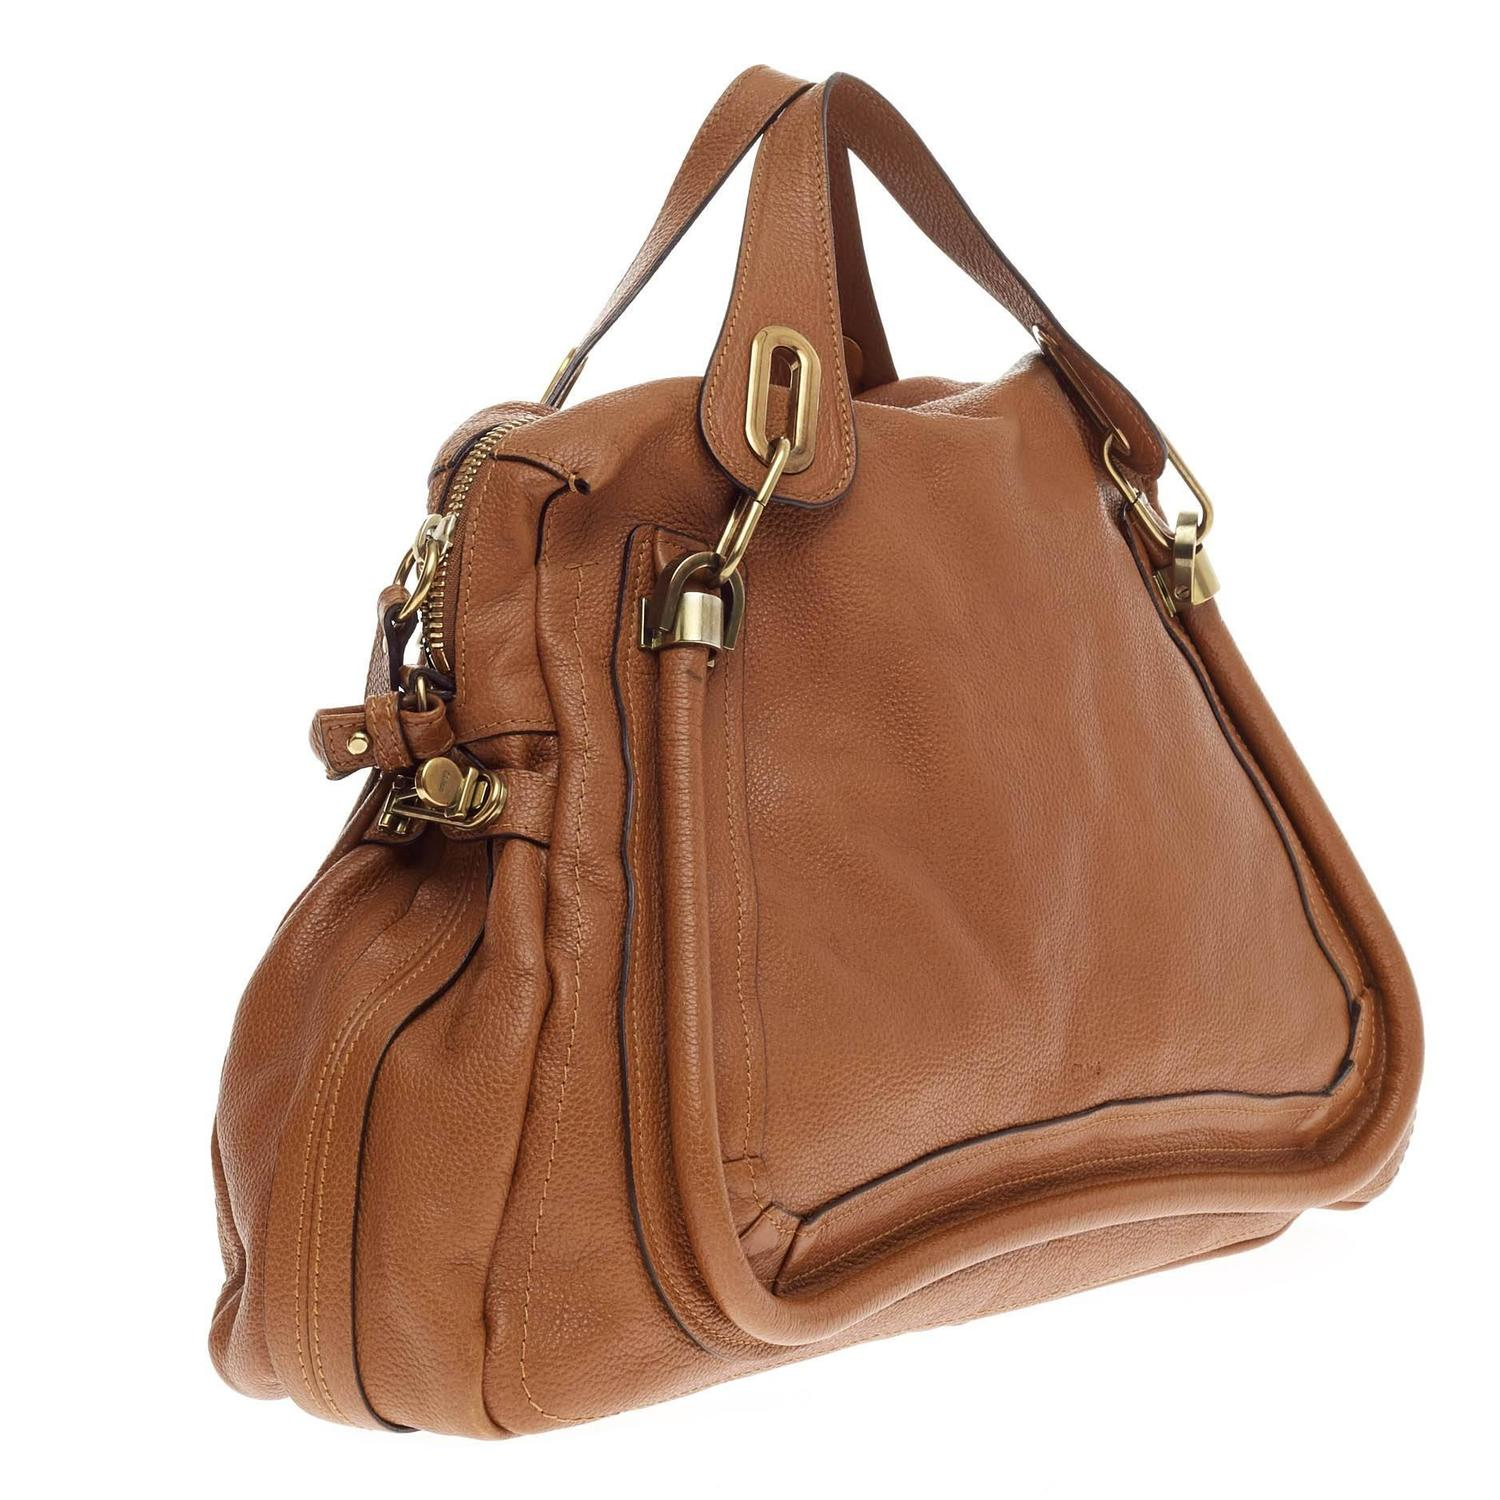 Chloe Paraty Top Handle Bag Leather Large at 1stdibs